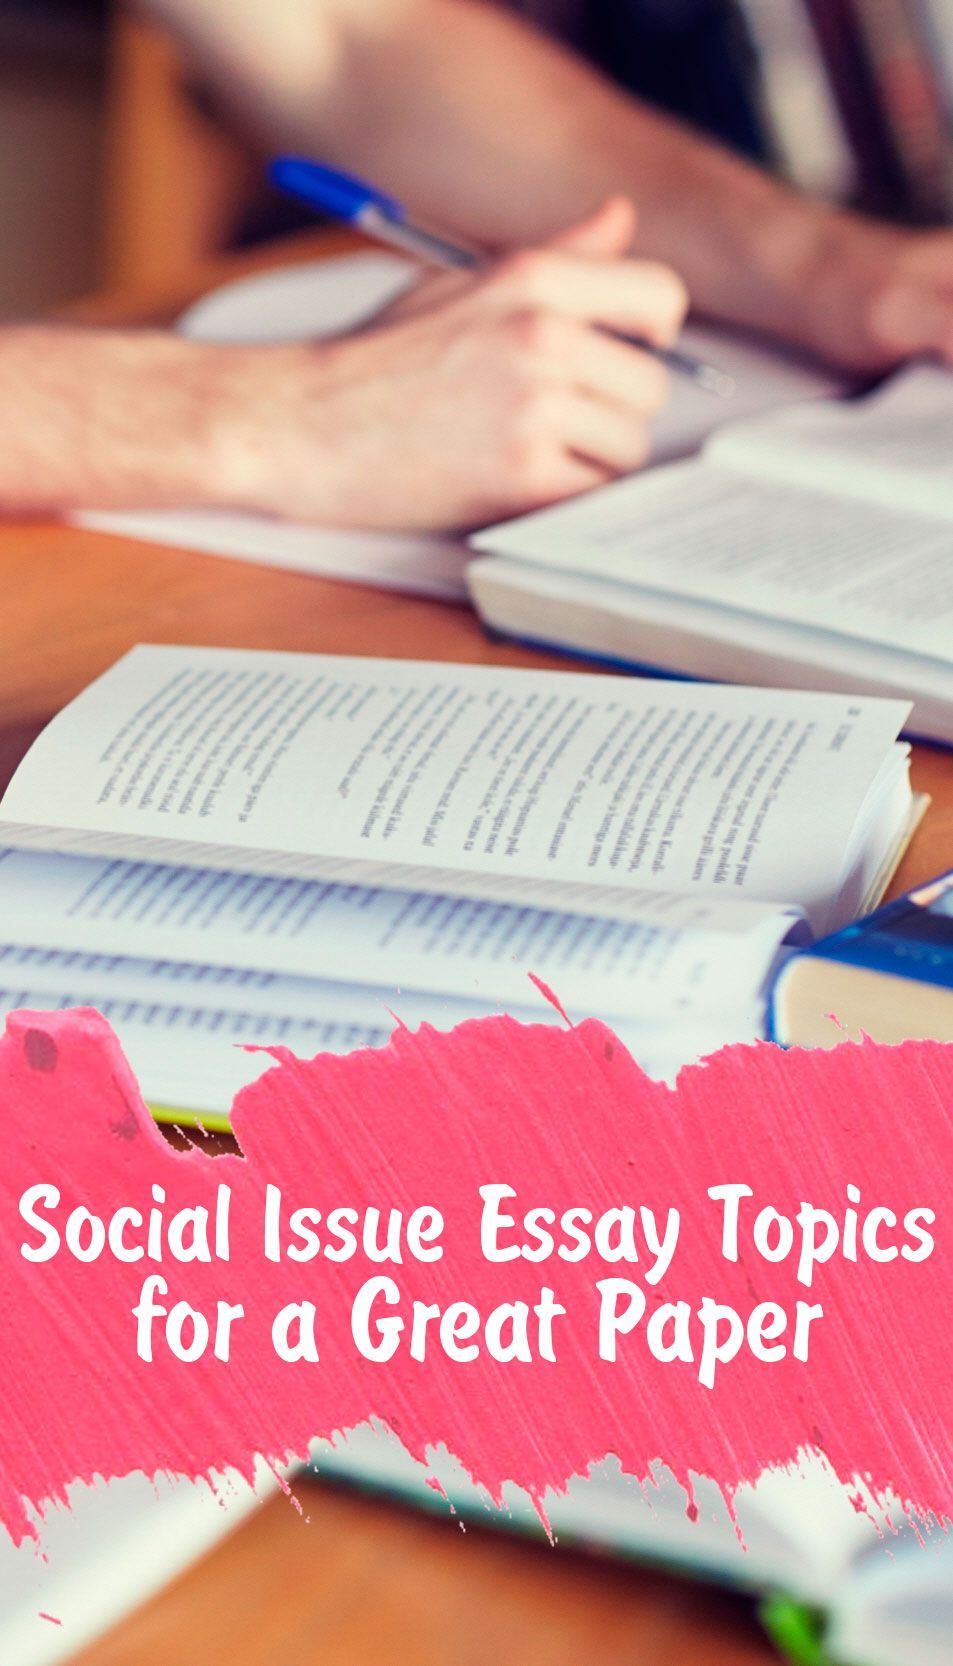 Population Essay In English Social Issue Essay Topics For A Great Paper Essay Writing Tips Essay Topics  Social Write A Good Thesis Statement For An Essay also Literary Essay Thesis Examples Social Issue Essay Topics For A Great Paper  Essay Writing Tips  Thesis Statement Essay